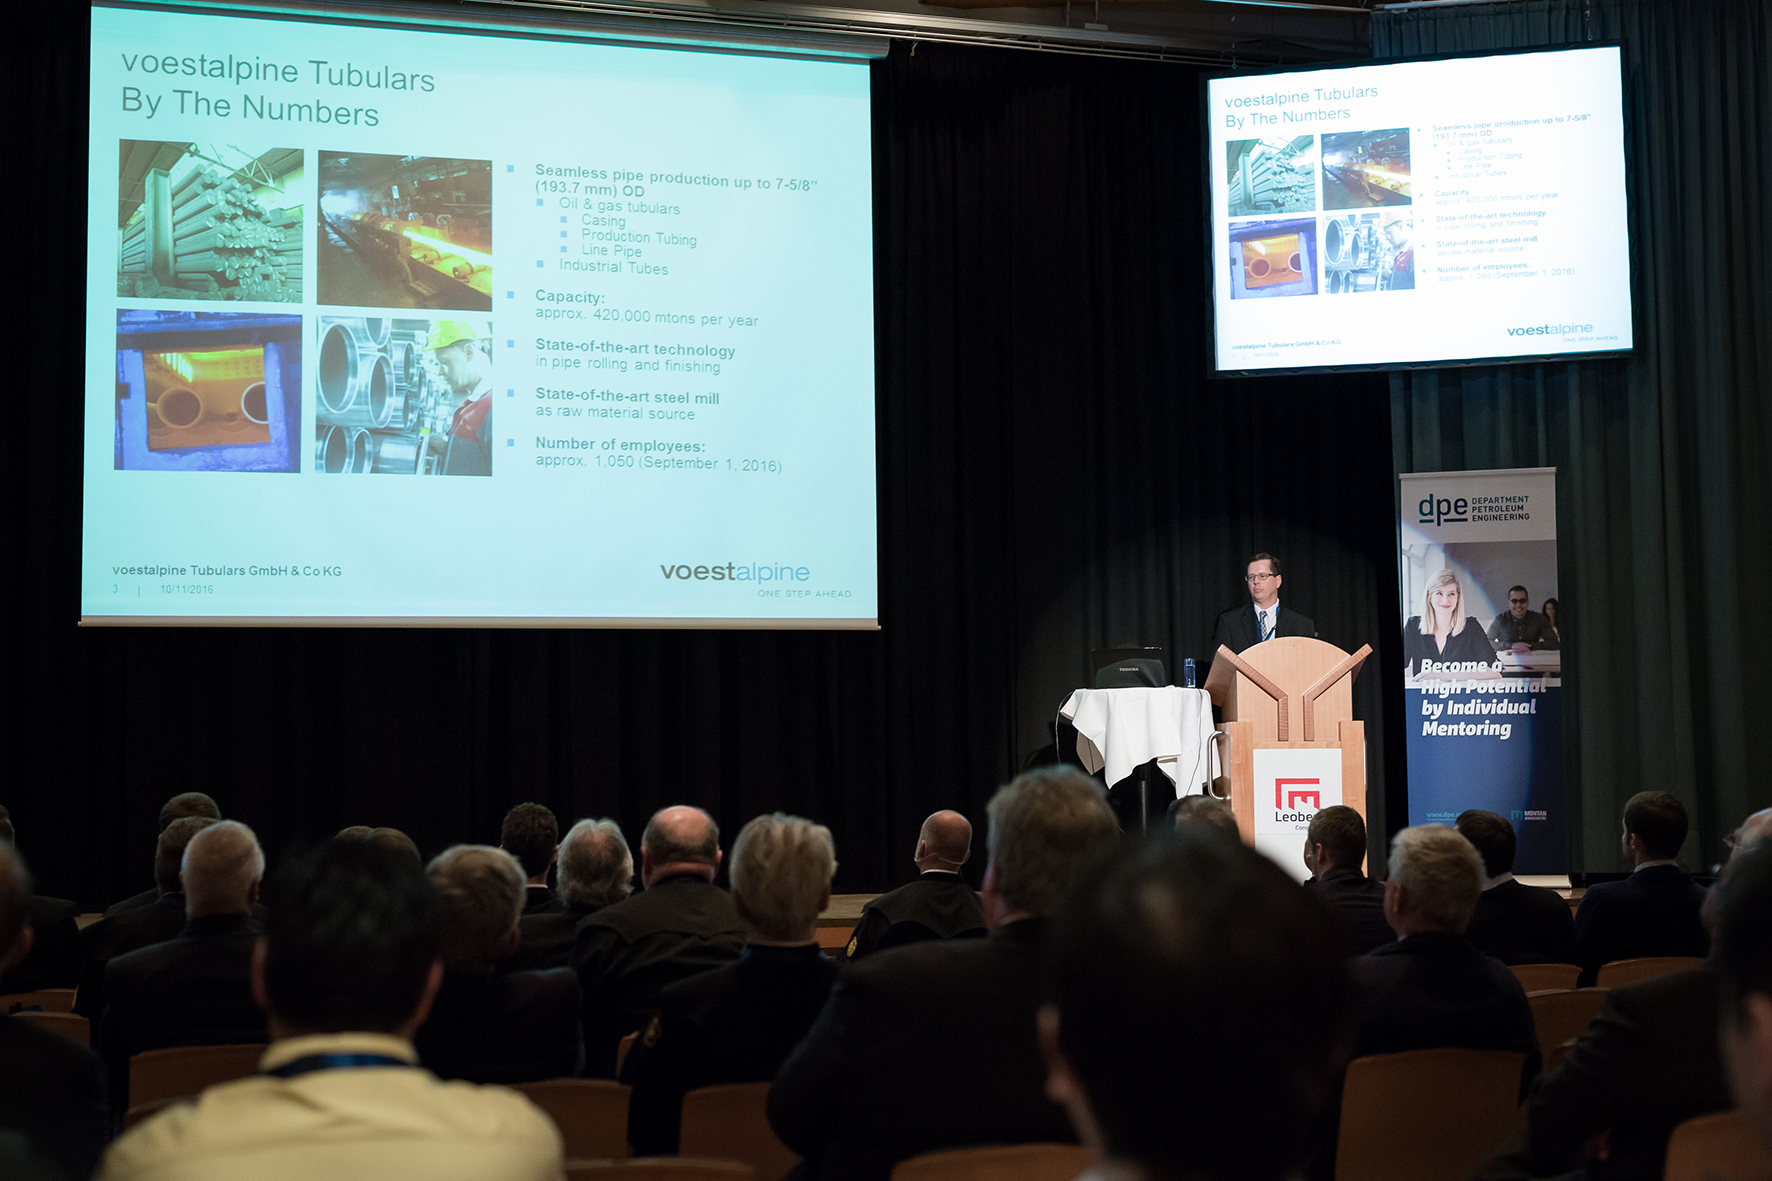 Ted Christiansen, Managing Director at voestalpine Tubulars, focused on innovation in his keynote.